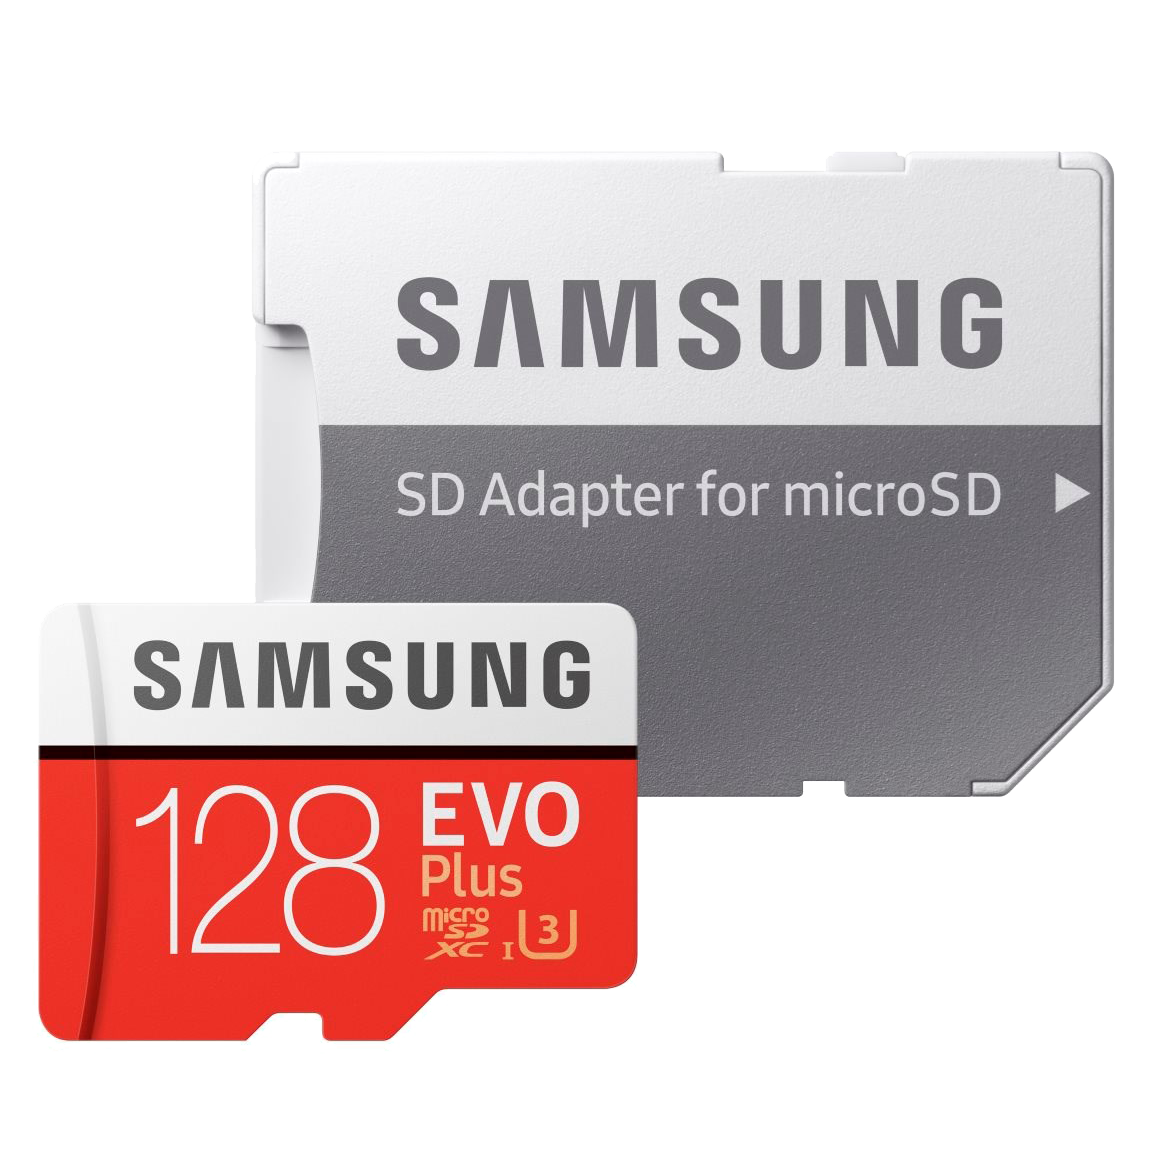 Samsung MicroSDXC EVO Plus 128GB Memory Card Red